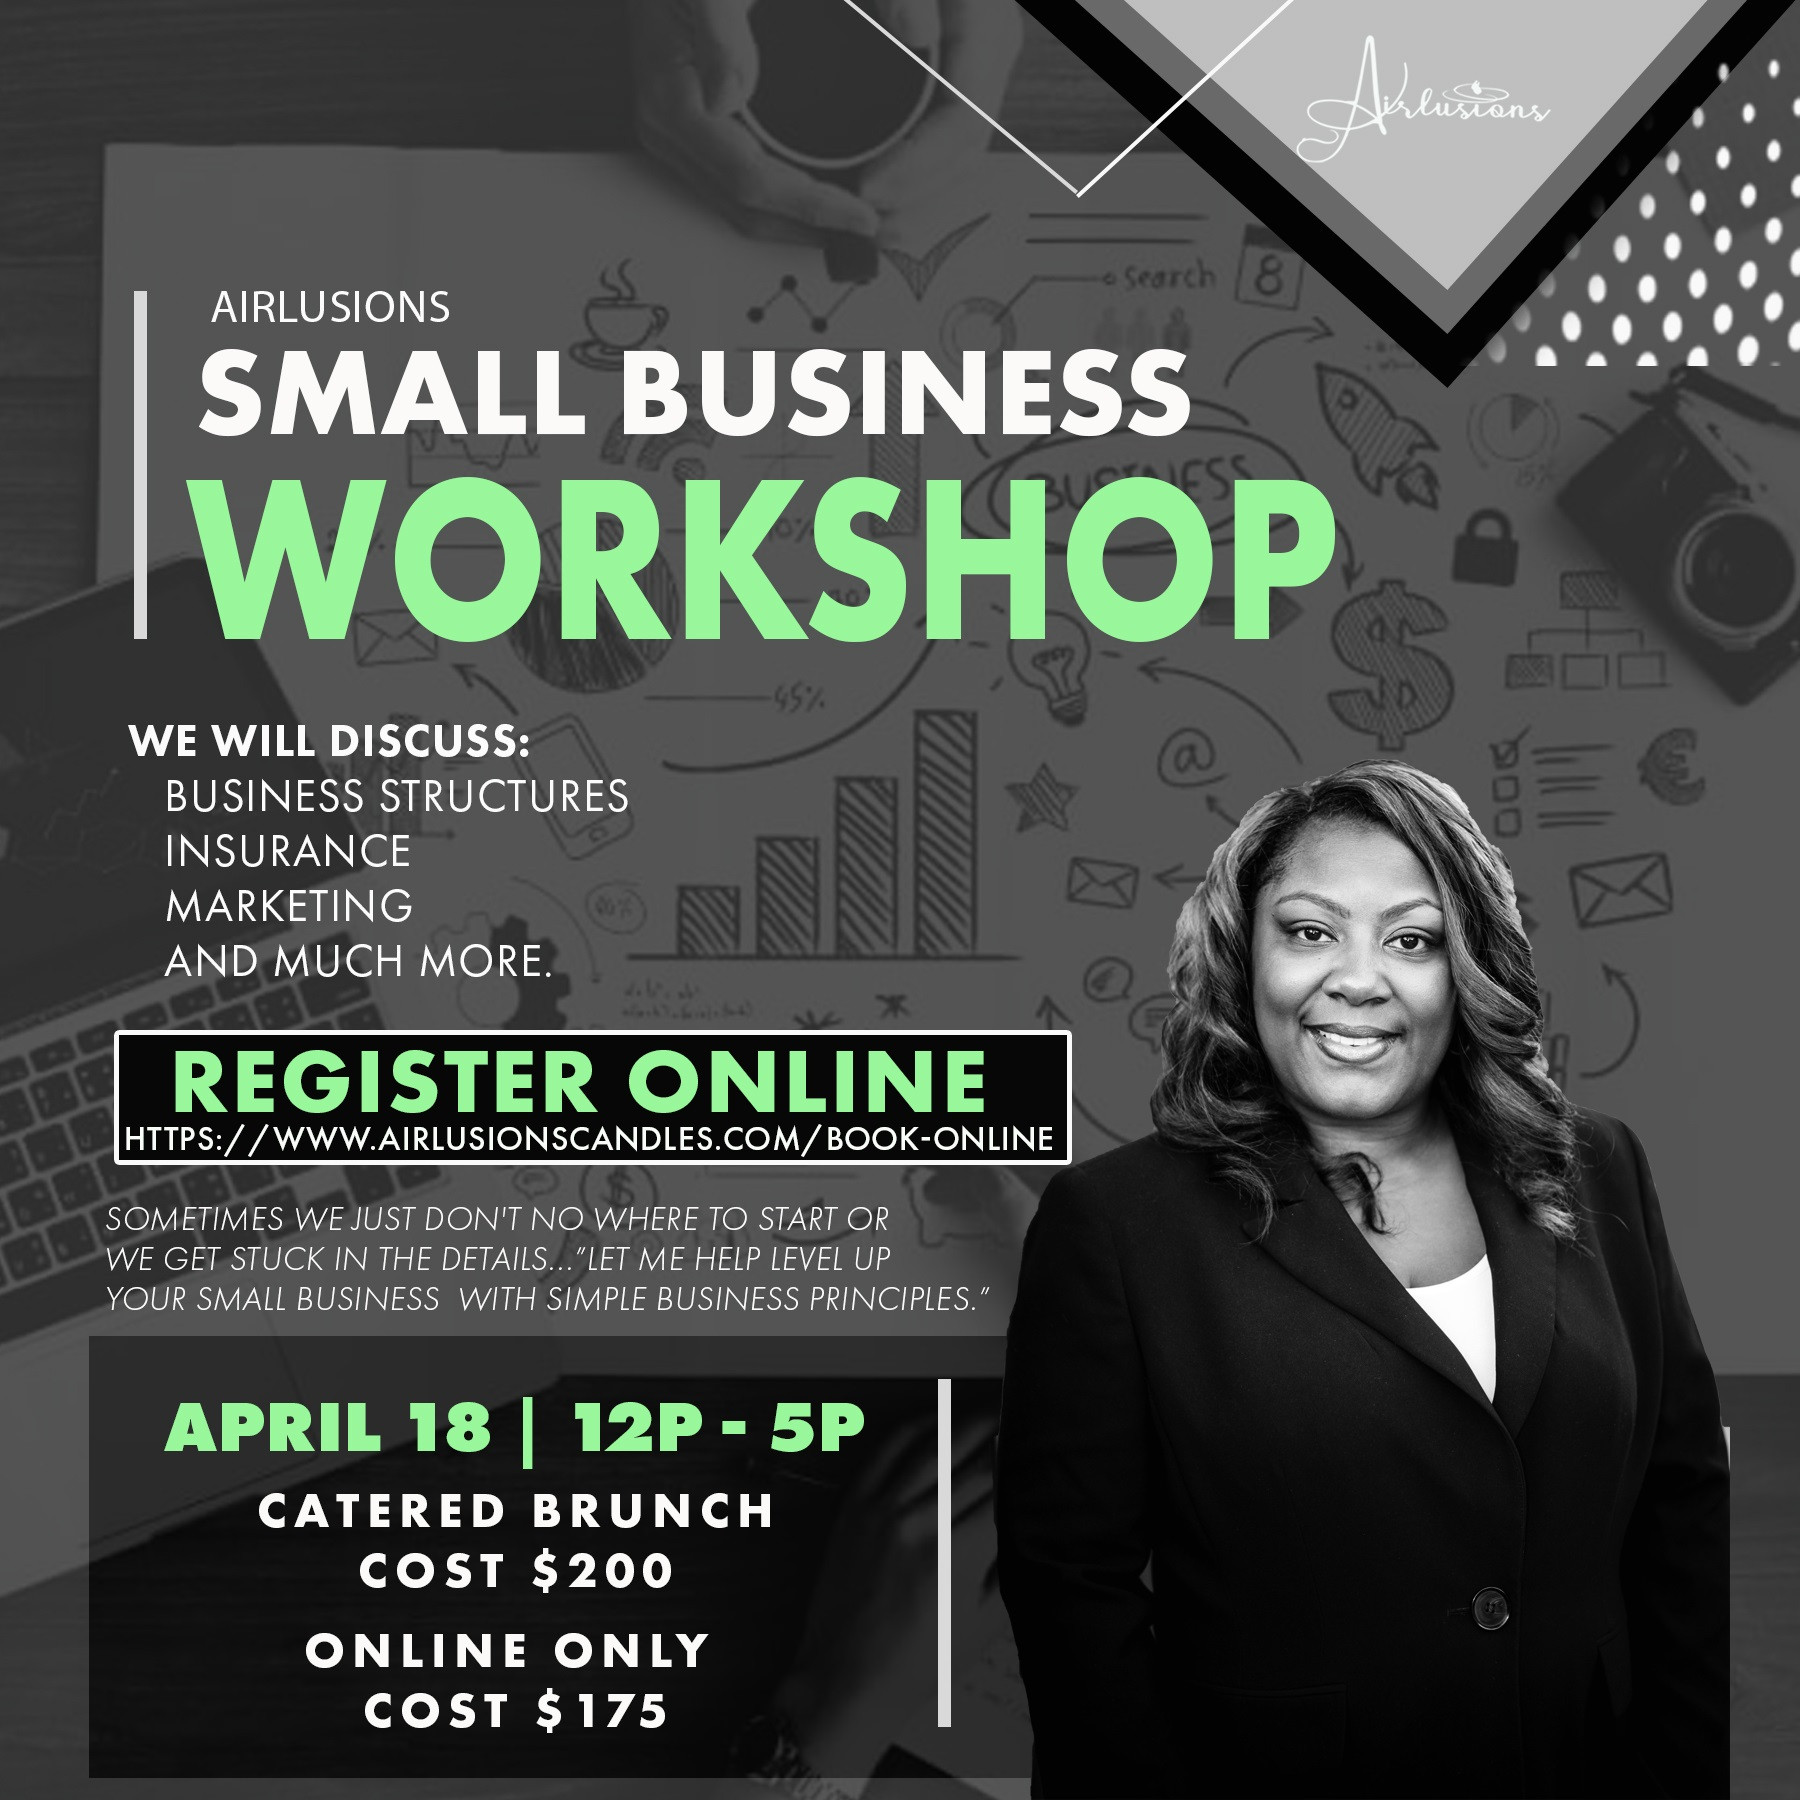 Airlusions-Small Business Workshop